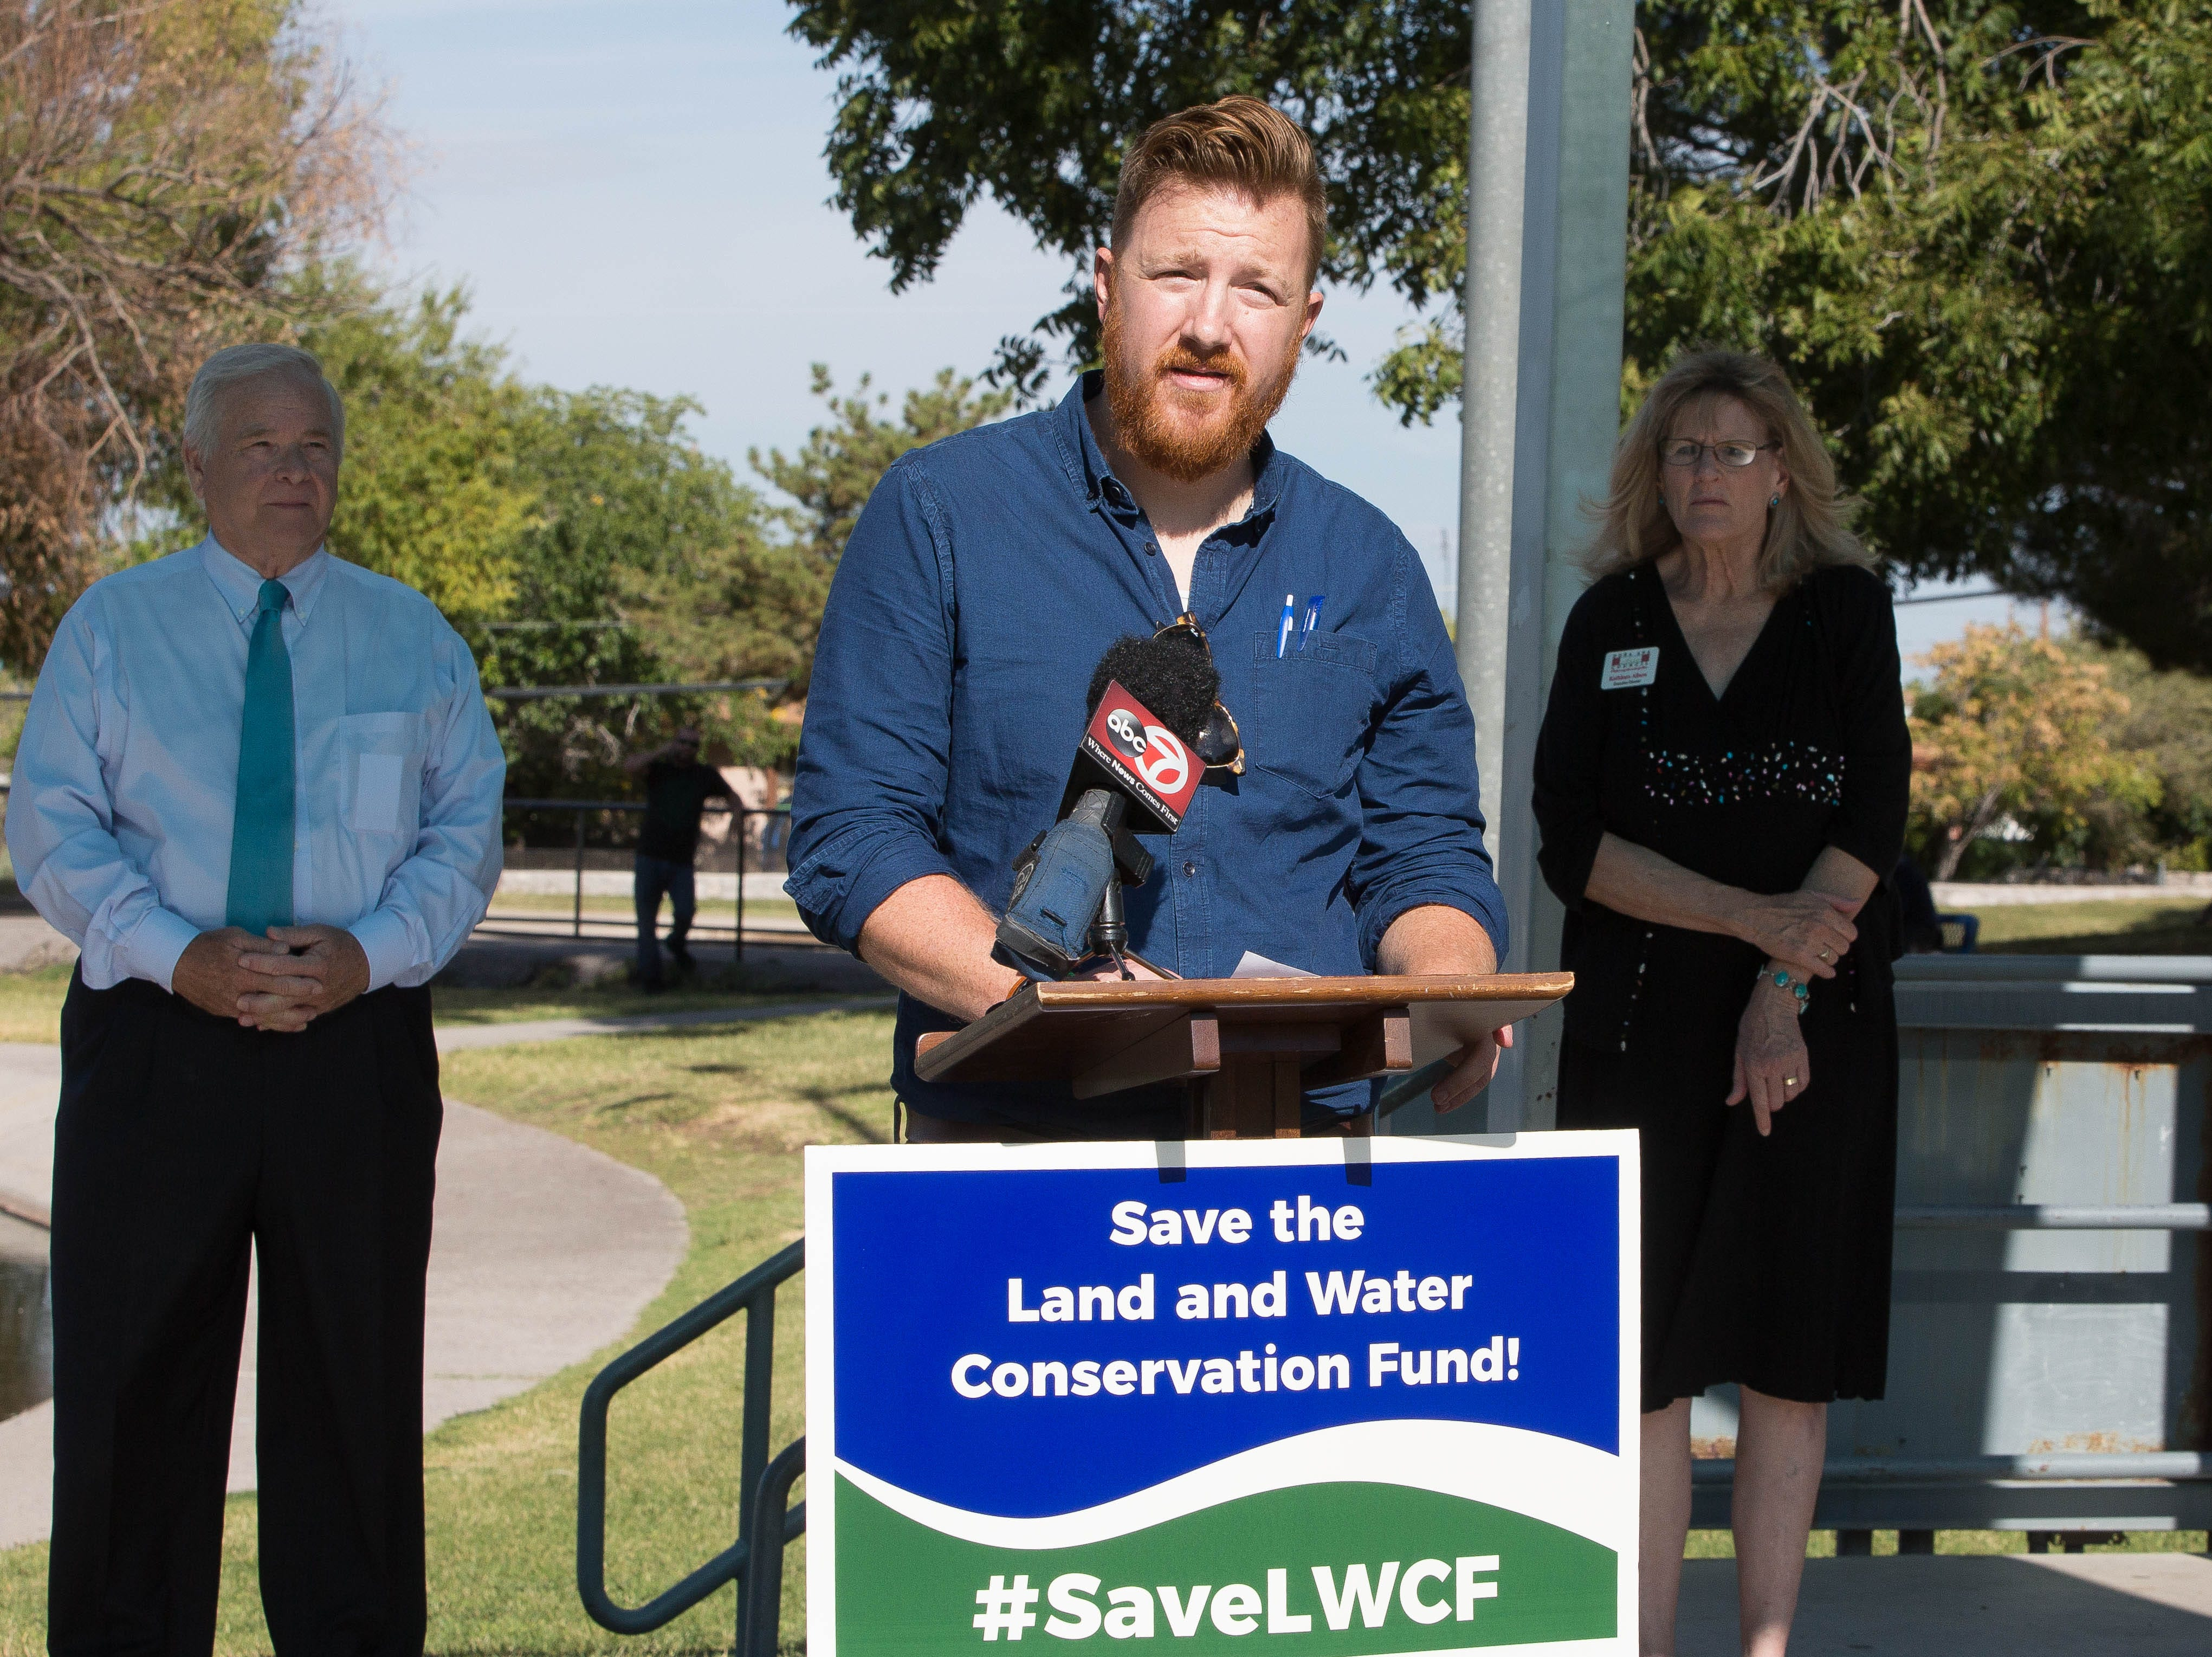 Patrick Nolan, executive director of Friends of the Organ Mountains-Desert Peaks, speaks about the Land and Water Conservation Fund, Monday October 1, 2018 at Young Park.